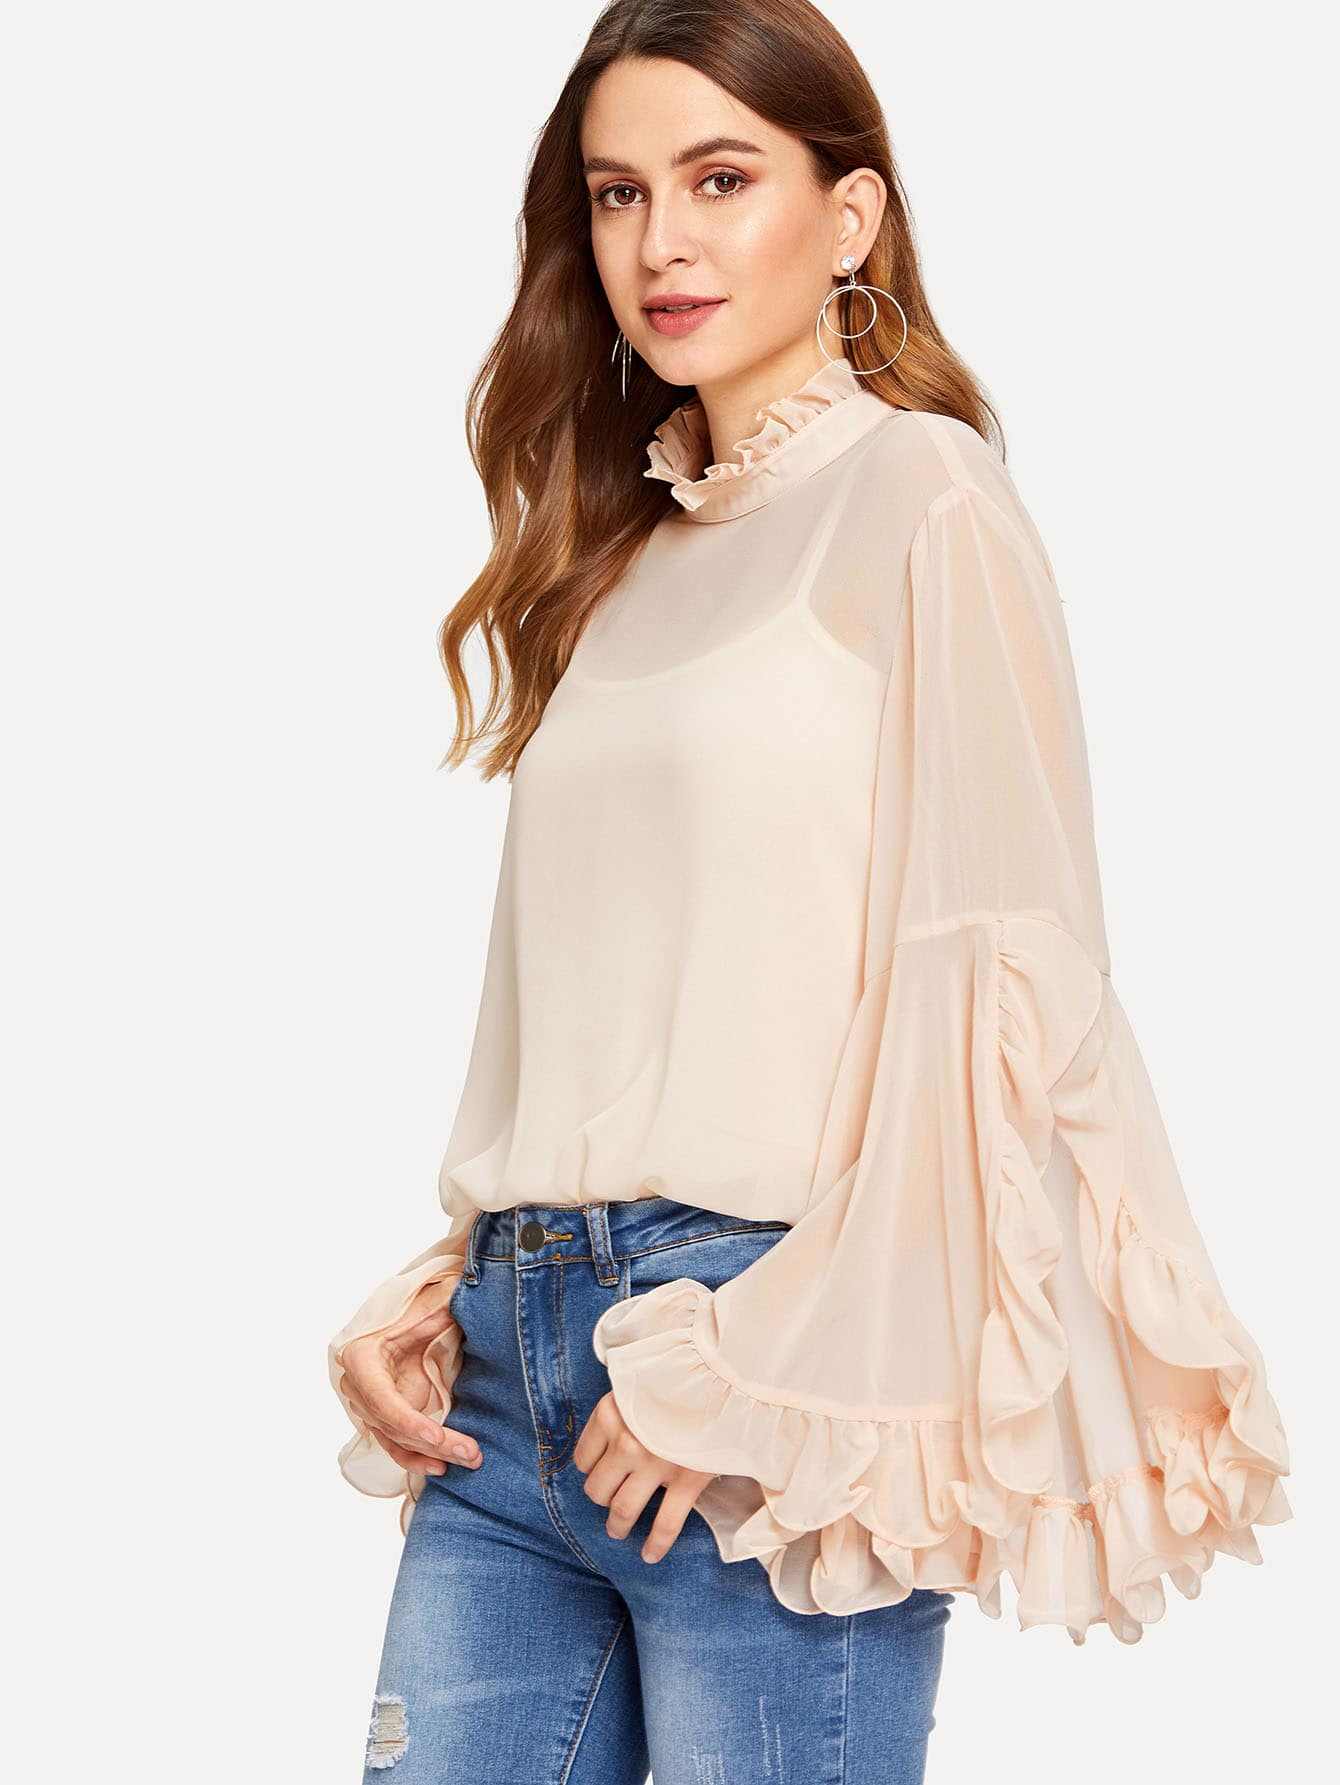 Slit Exaggerate Flounce Sleeve Sheer Top without Cami flounce string bra with sheer briefs